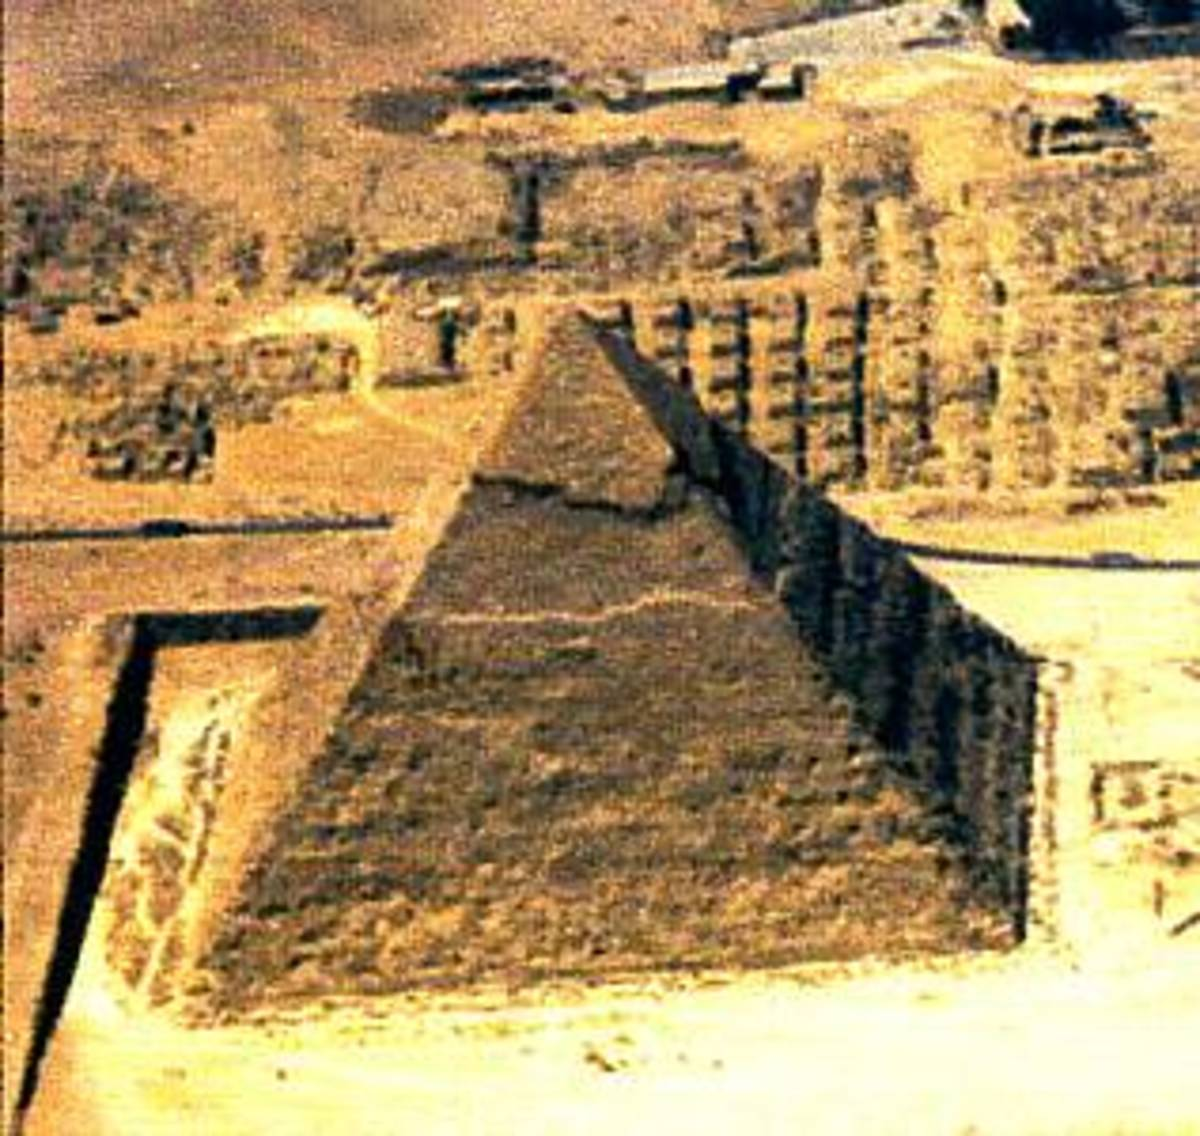 The Great Pyramid from the air.